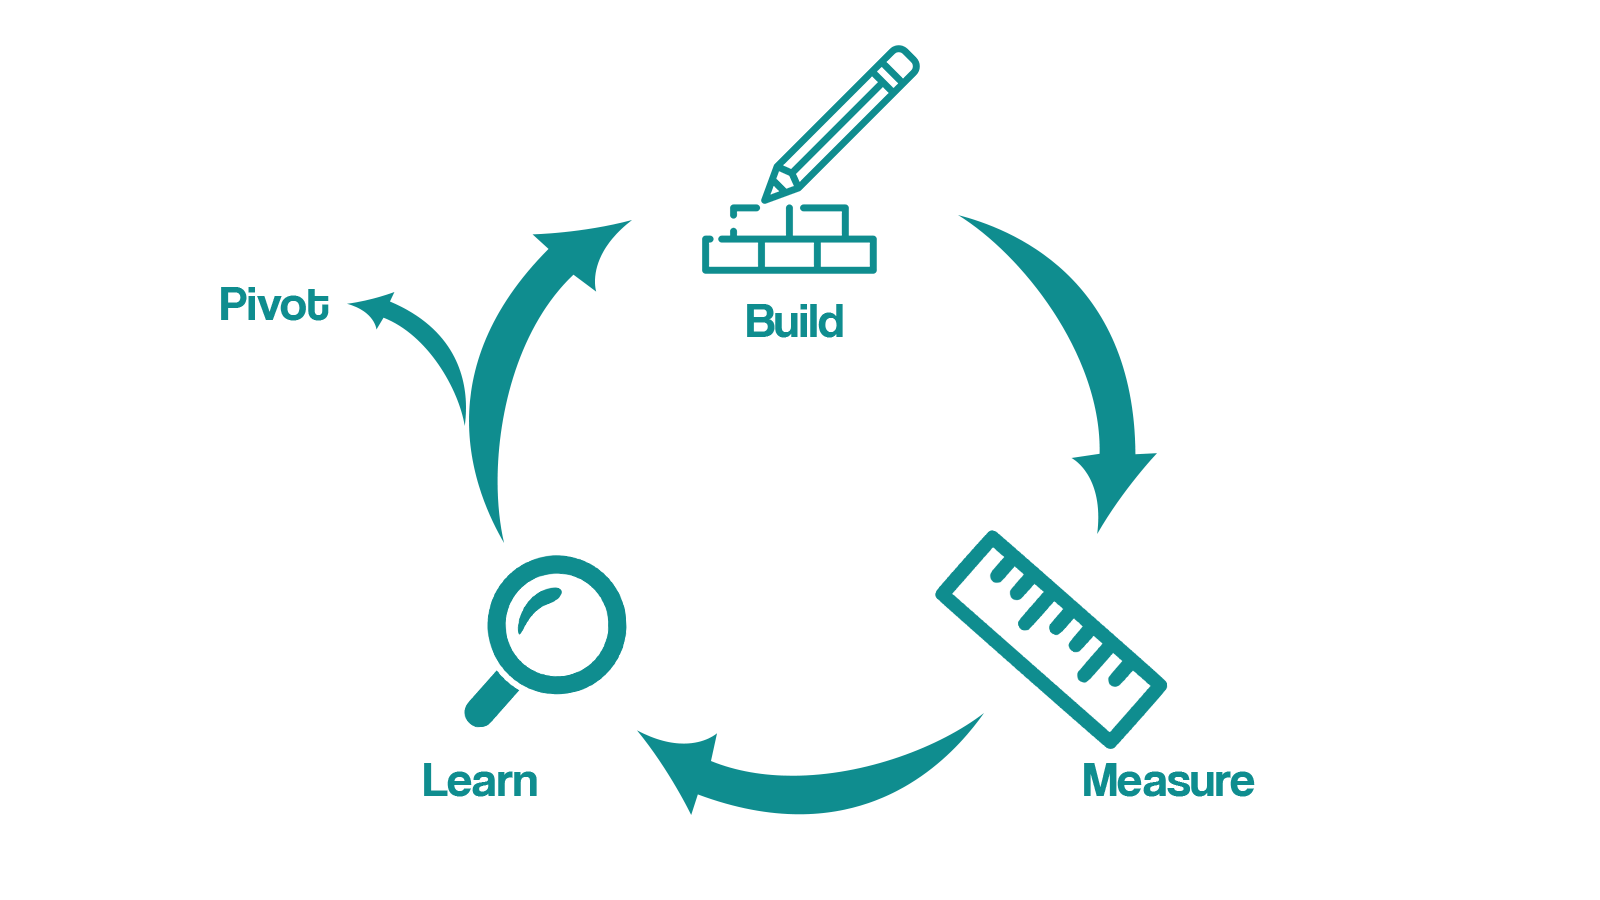 Simplified diagram showing how agile development works